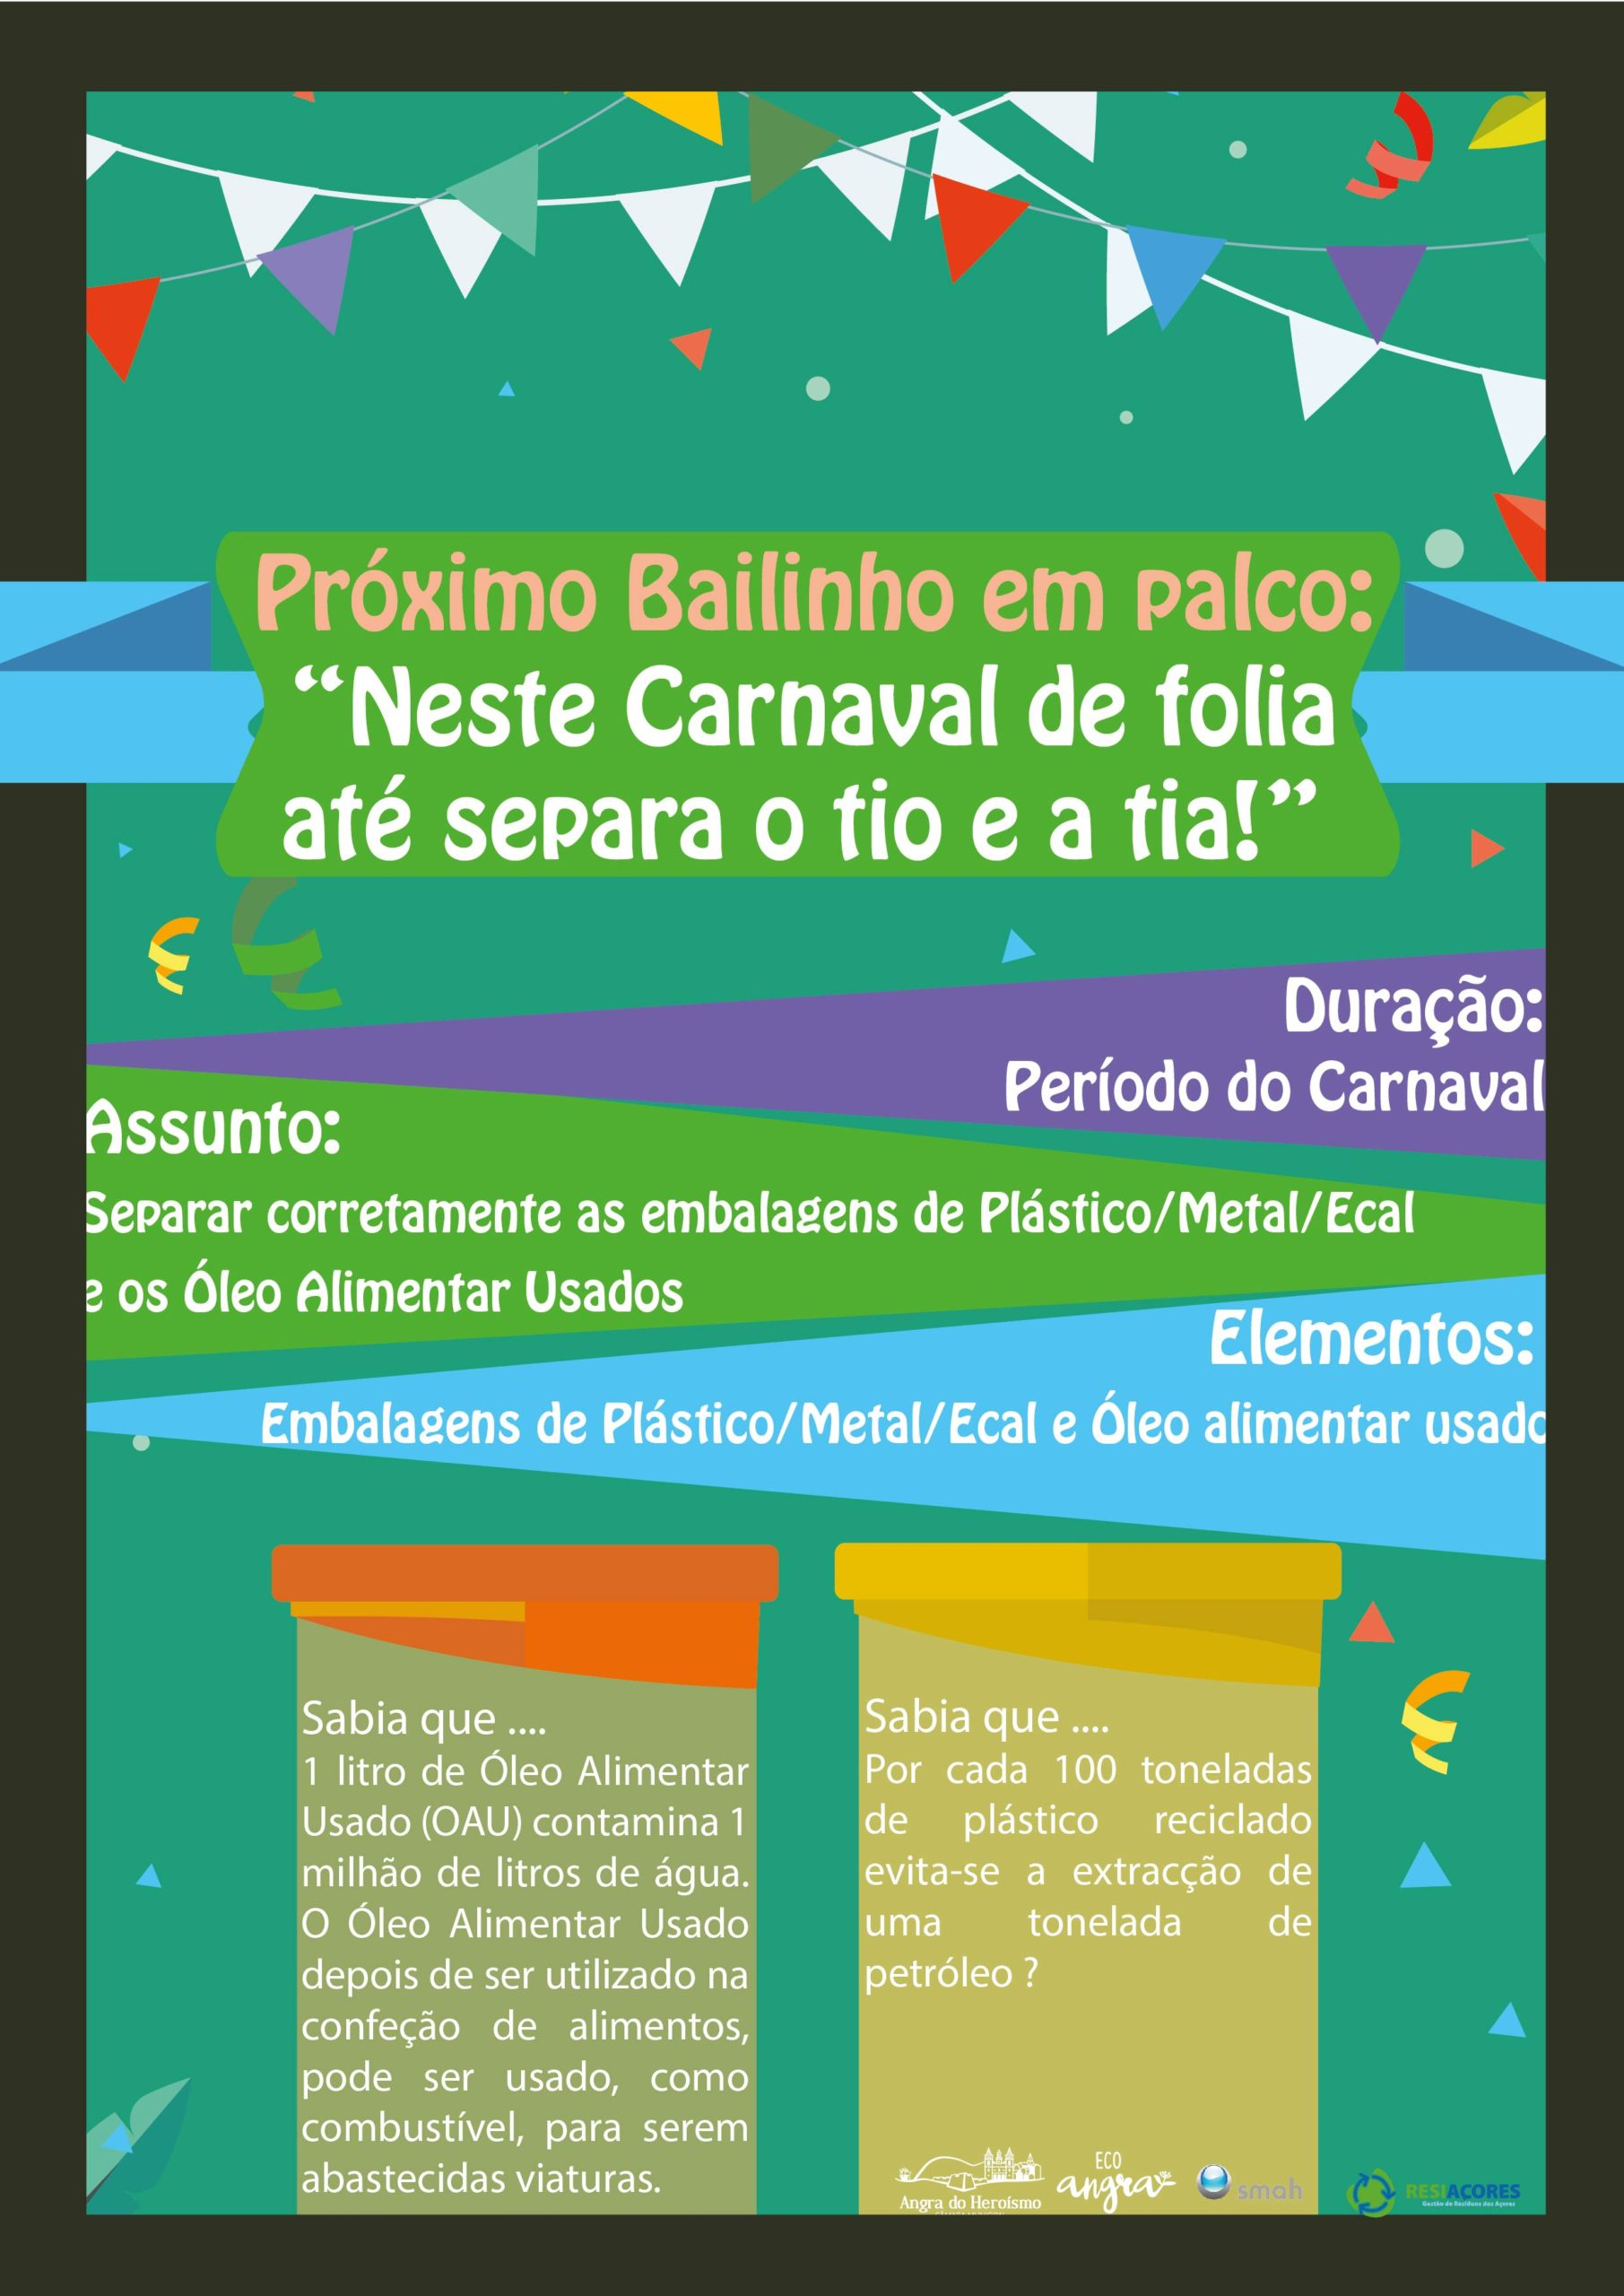 Photo of Neste Carnaval de Folia, Até Separa o Tio e a Tia